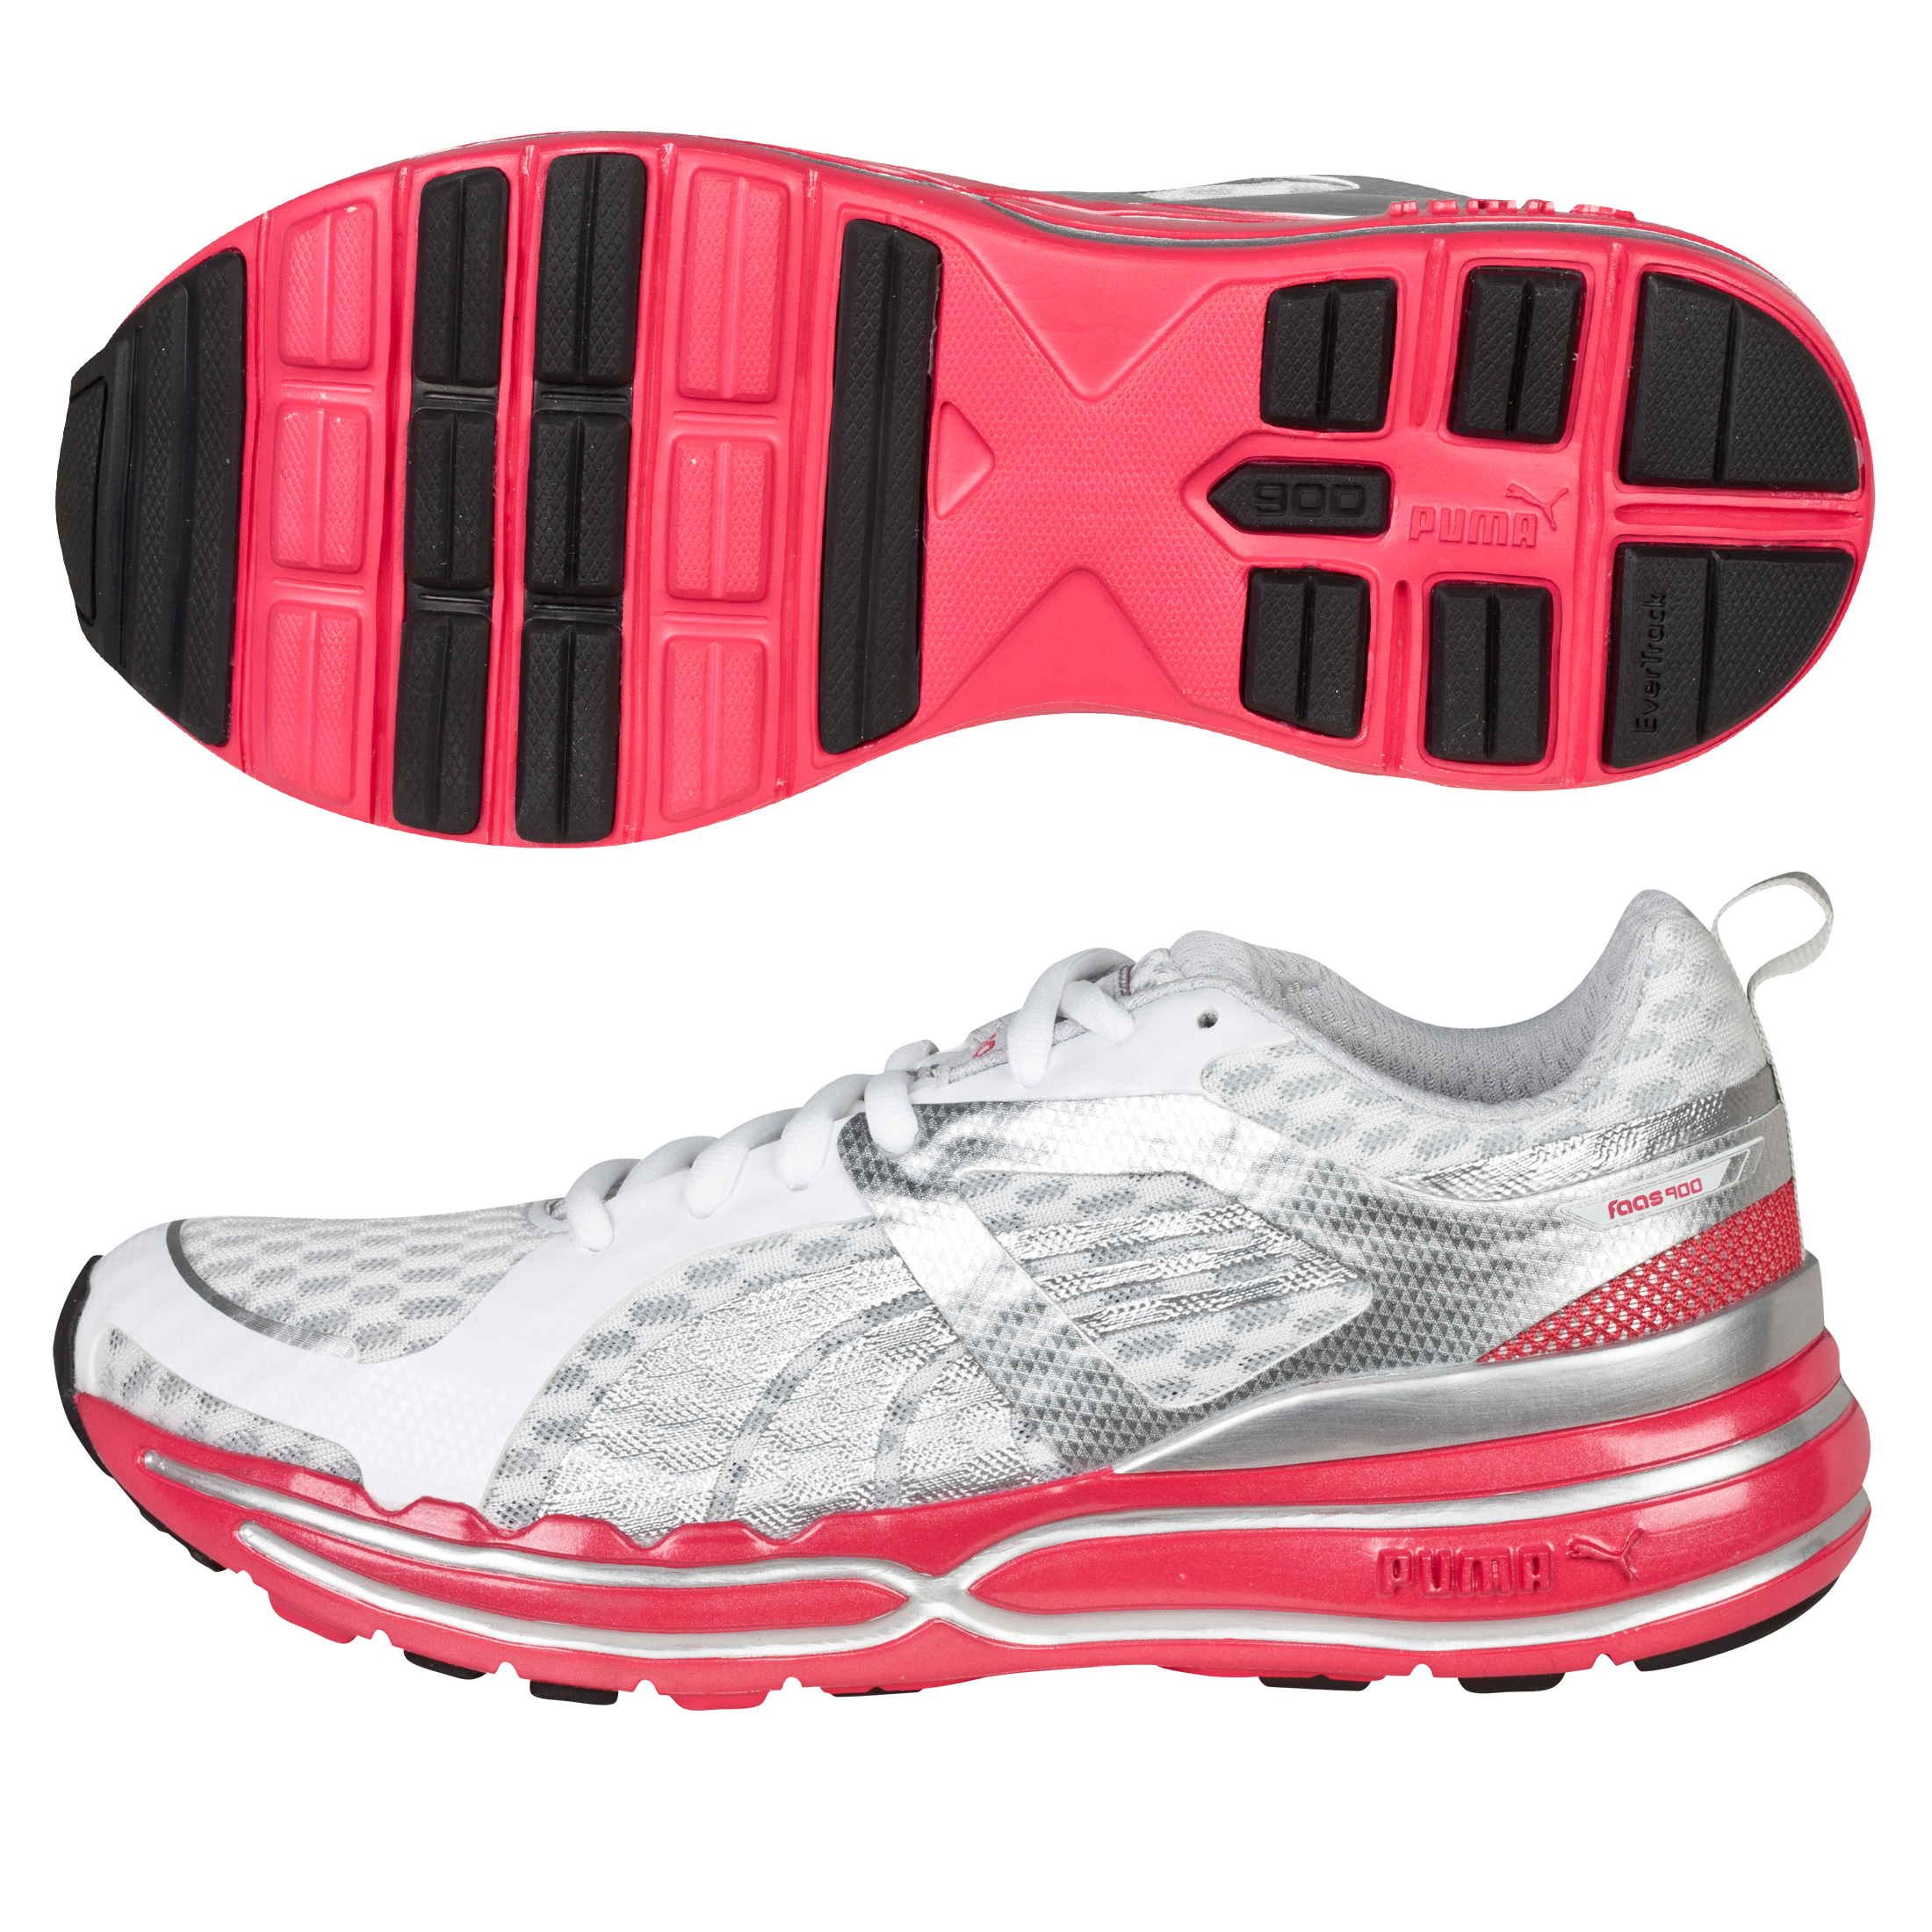 Puma Faas 900 Cushion Running Trainers - White/Puma Silver/Teaberry Red - Womens